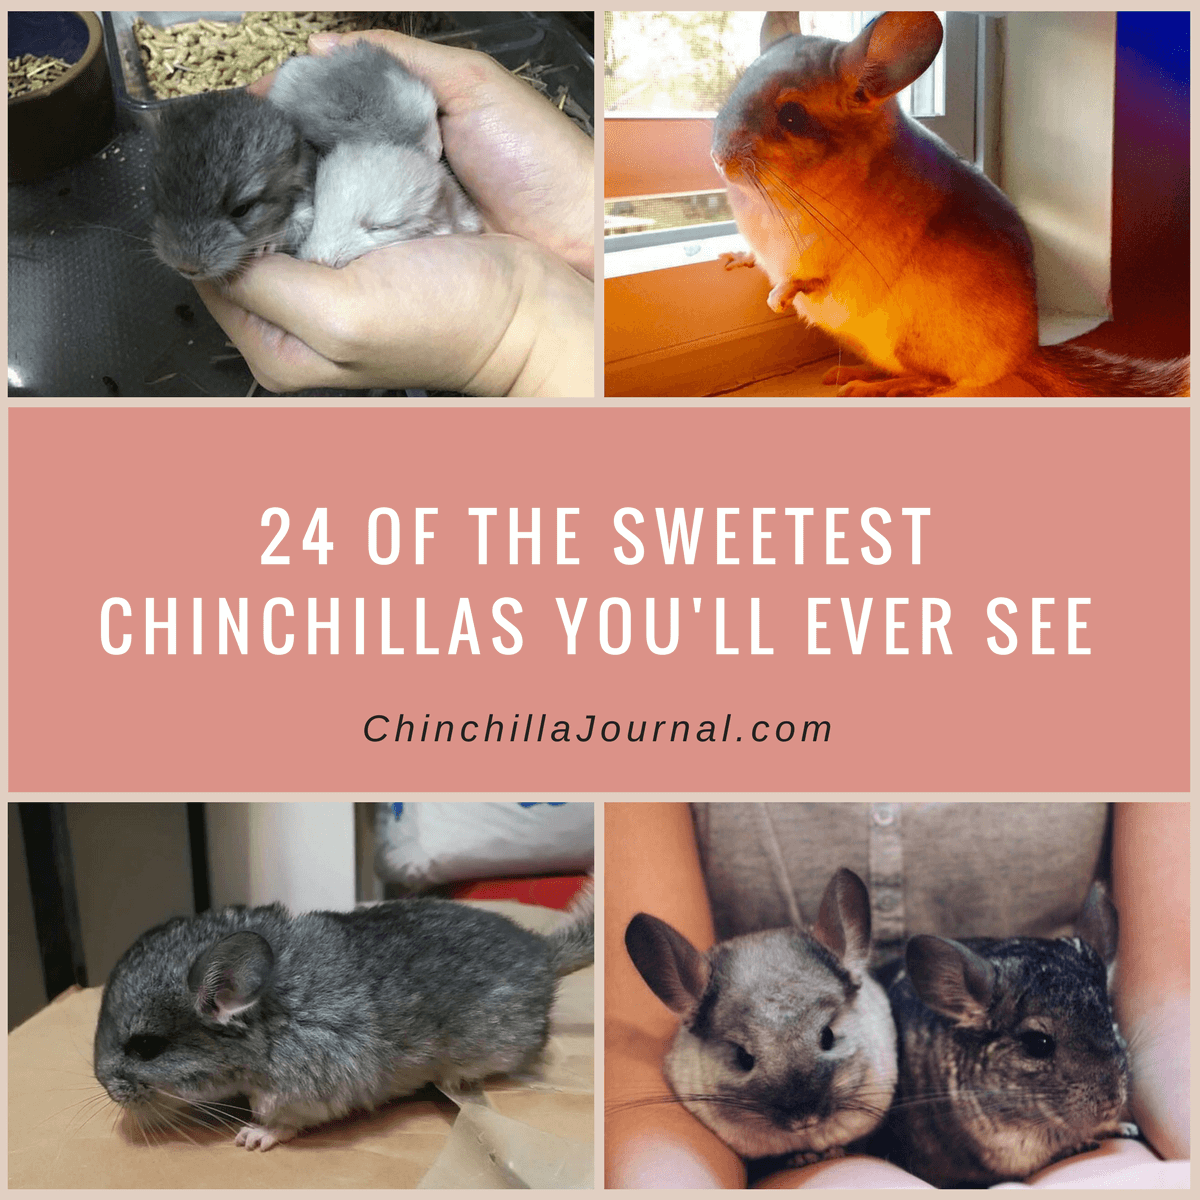 24 Of The Sweetest Chinchillas You'll Ever See